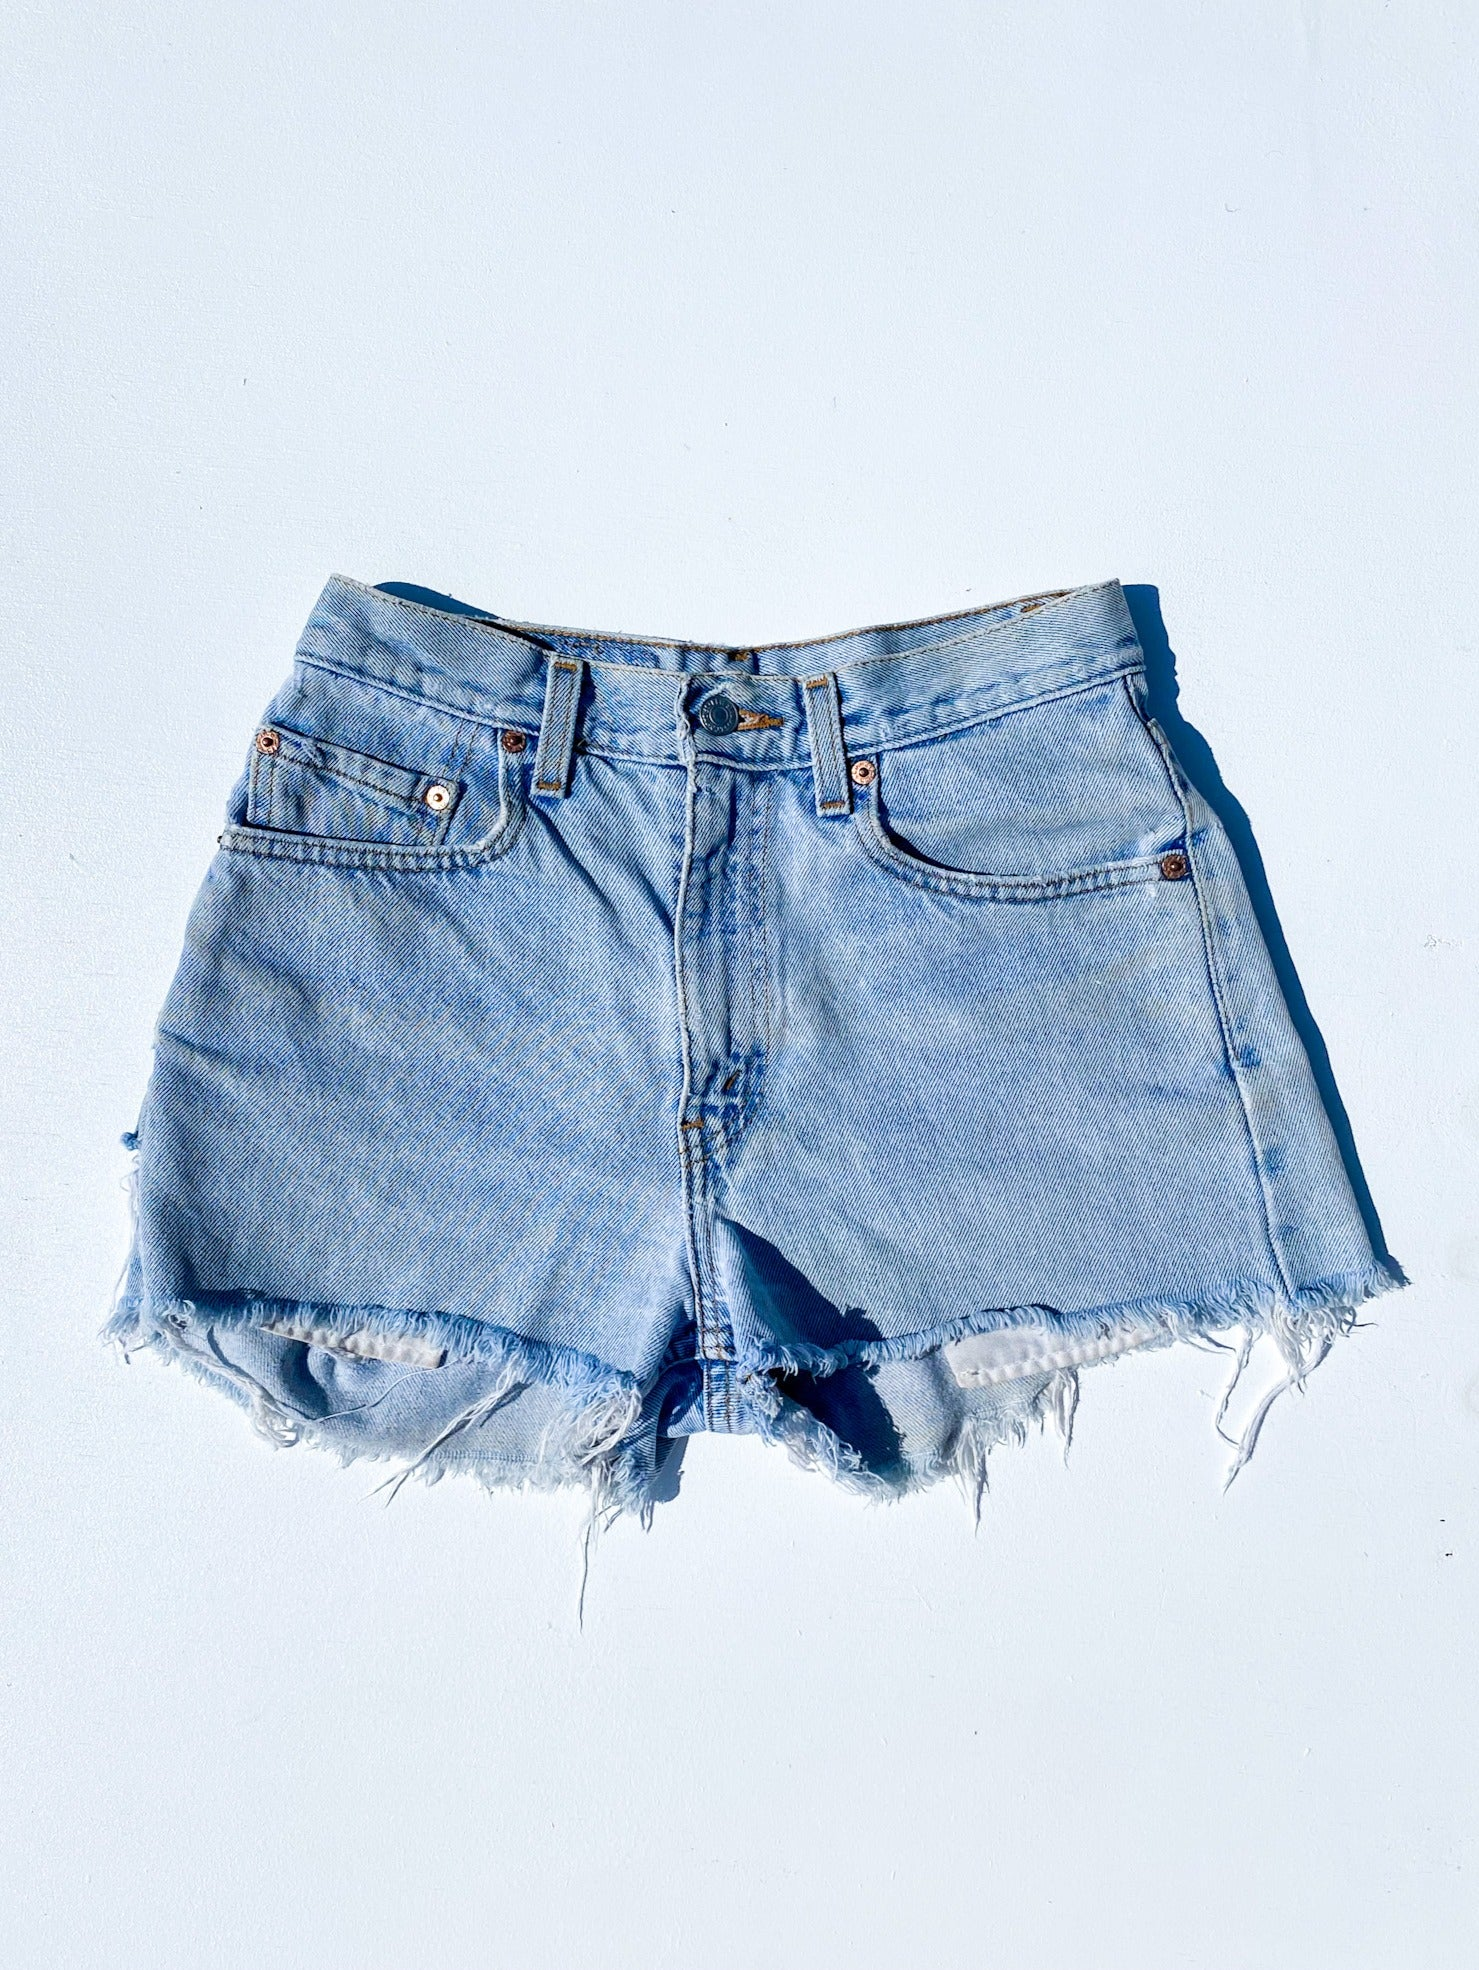 HIGH WAISTED LEVI'S SHORTS (24)